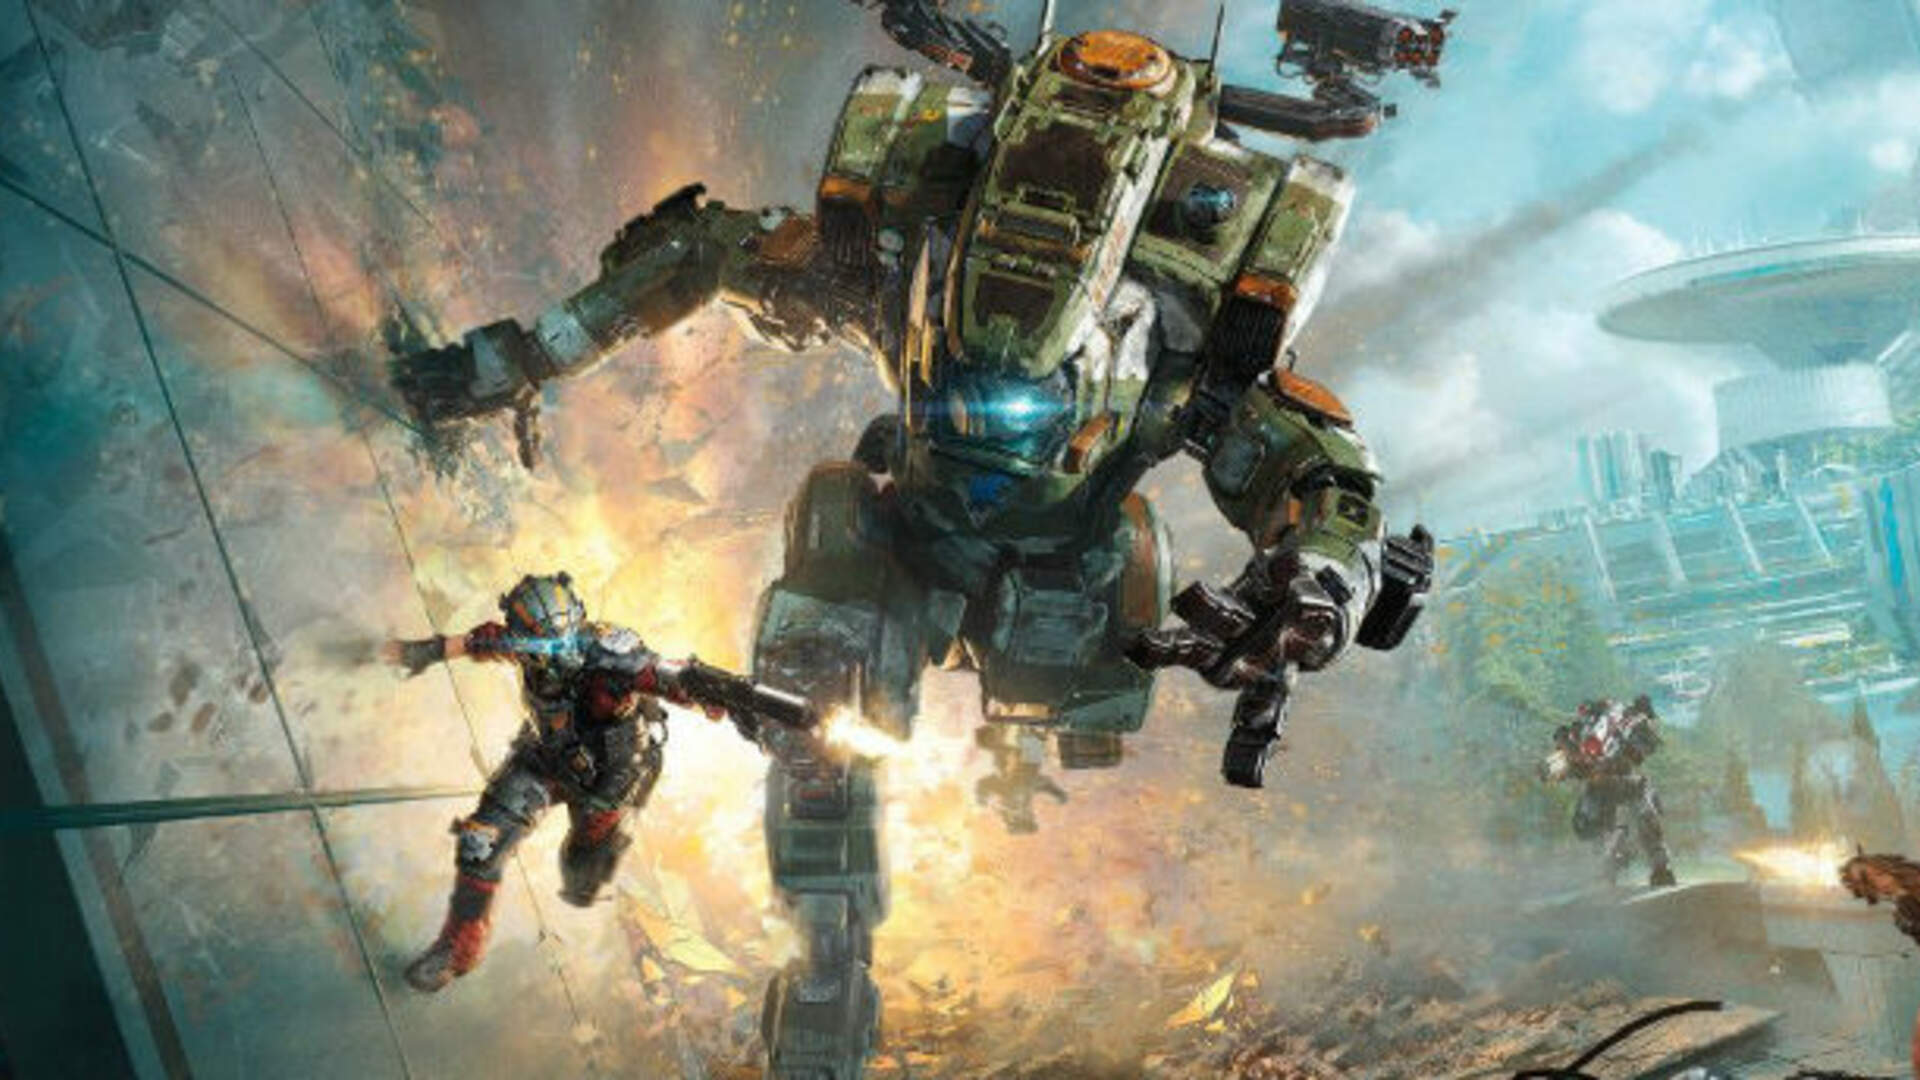 New Patch Greatly Improves Titanfall 2's Performance on the Xbox One X